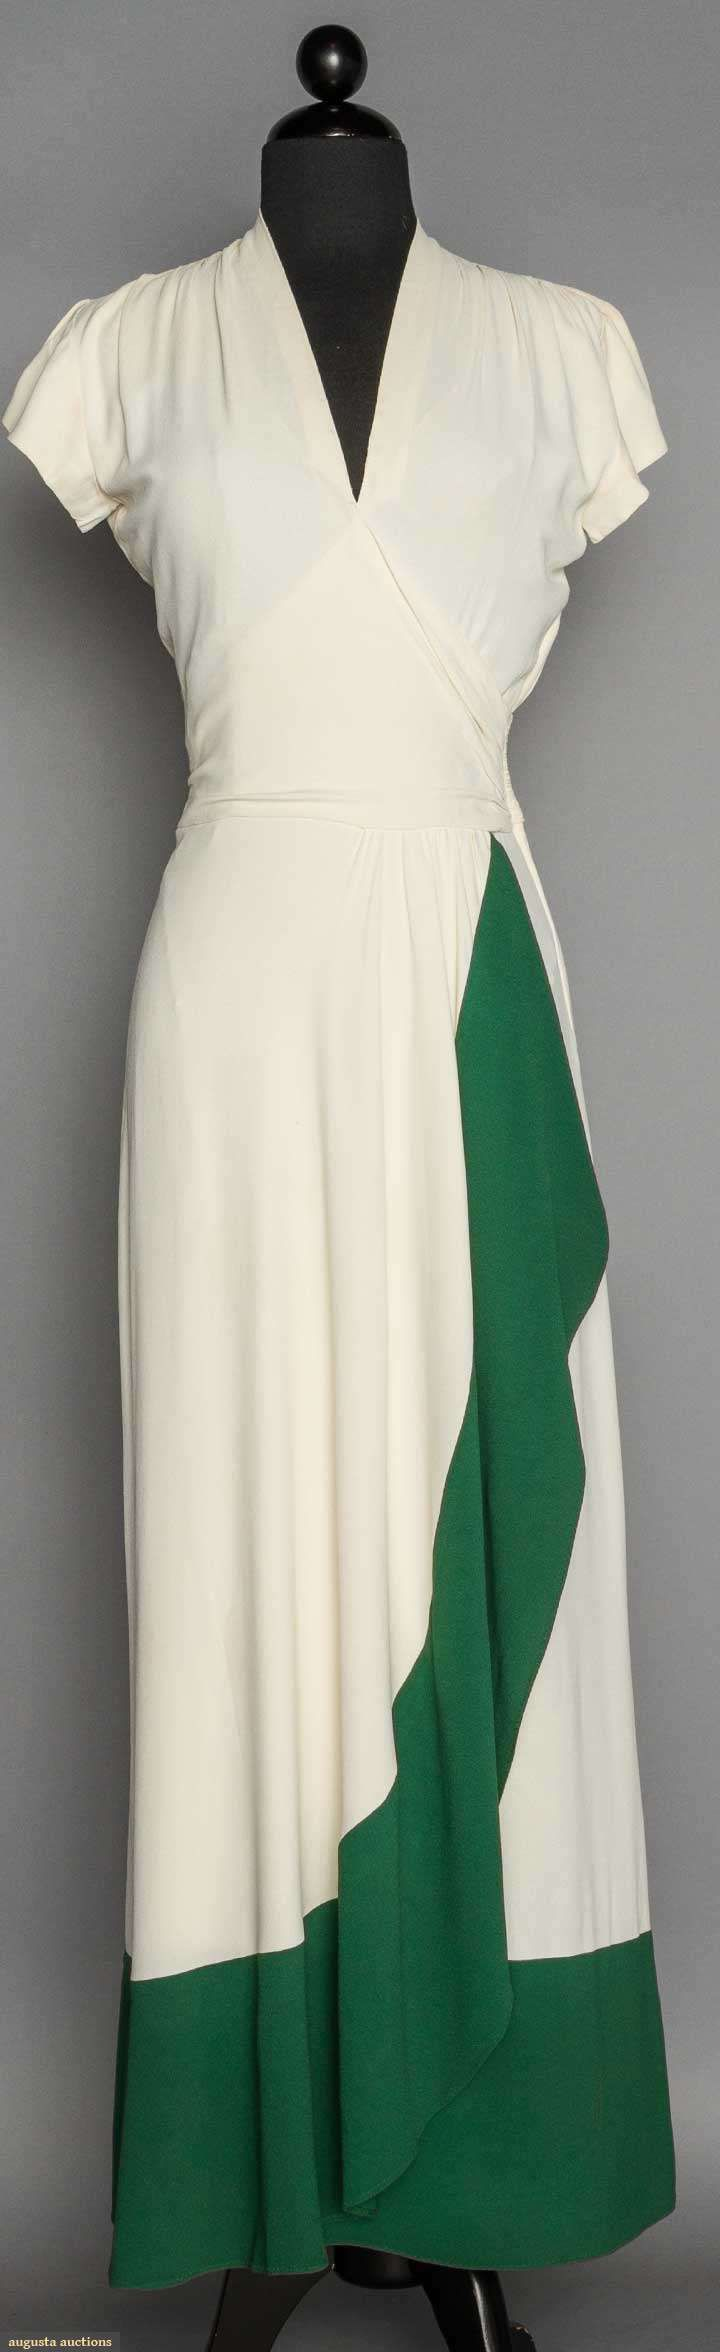 1940's white crepe dress with asymmetrical green panel